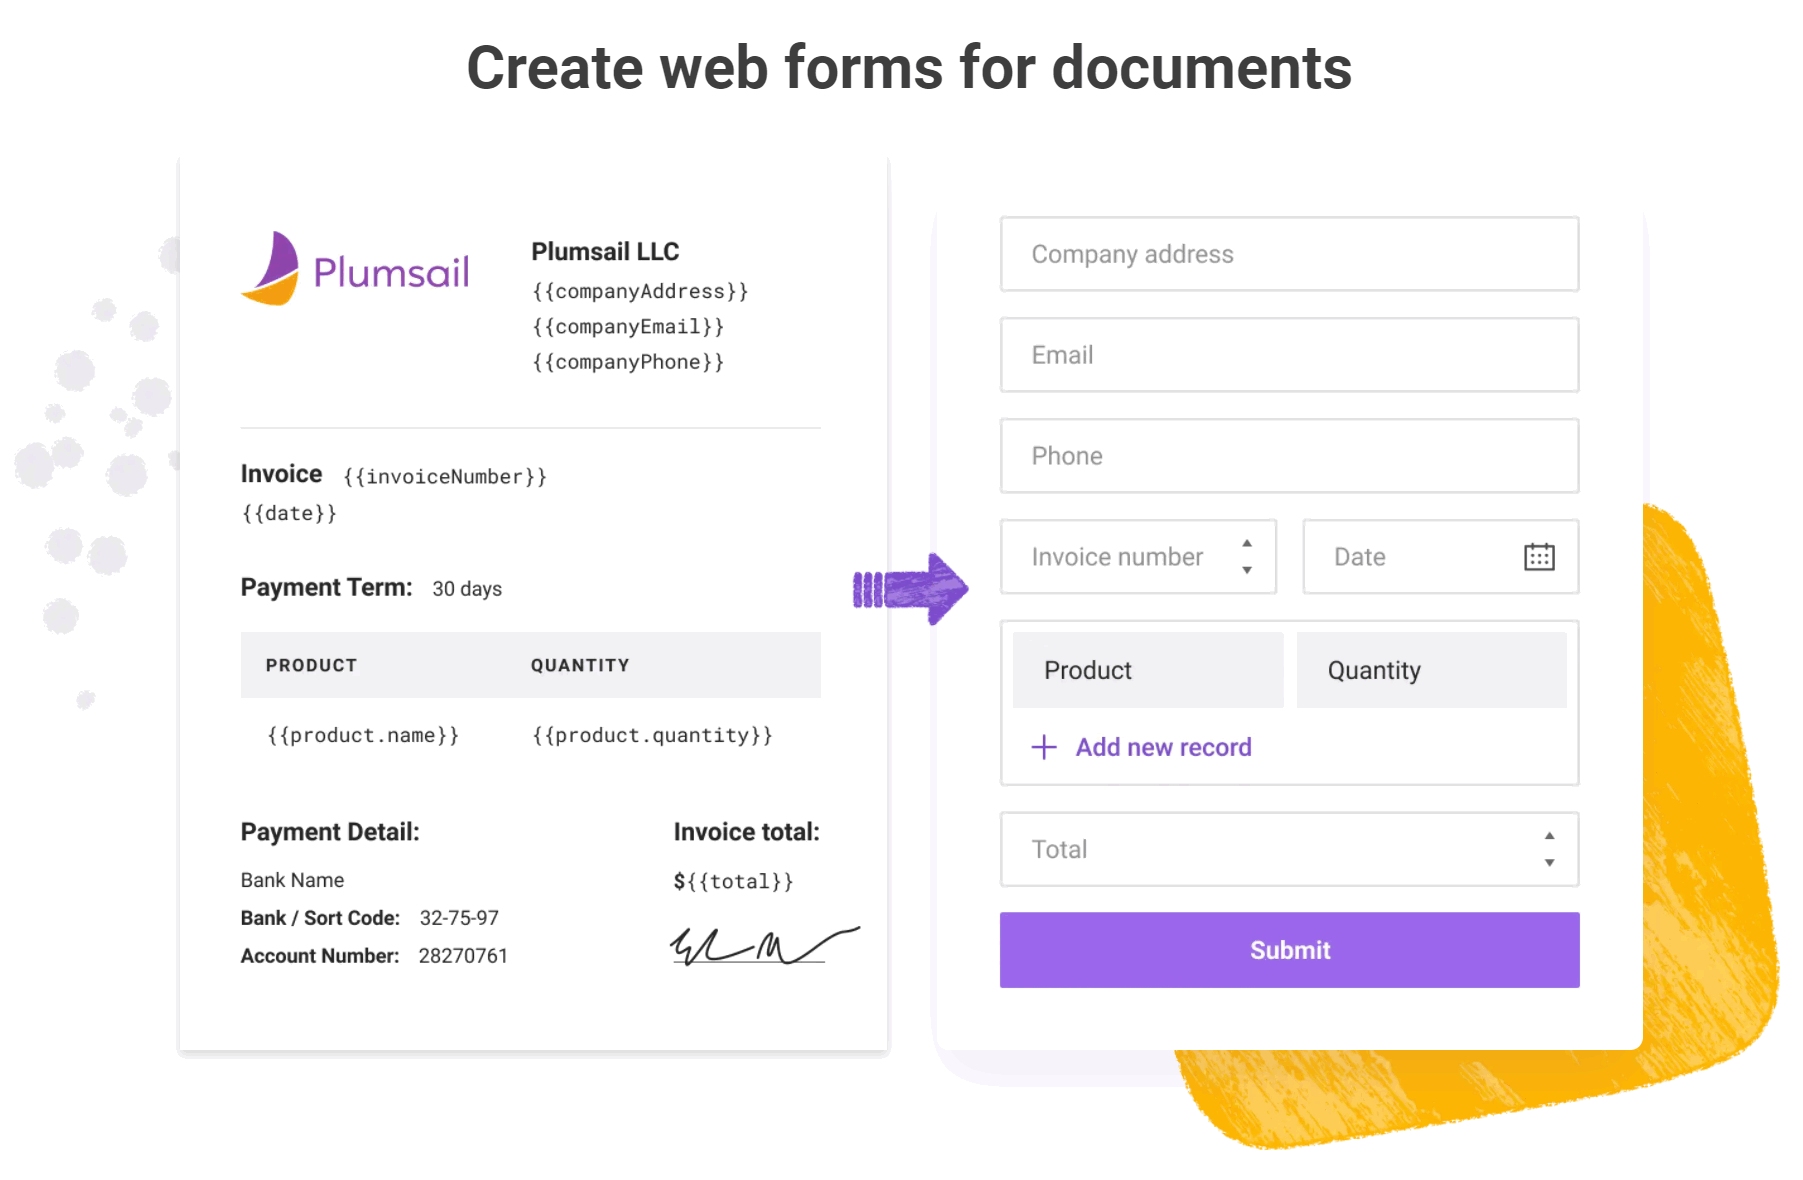 Create web forms for documents